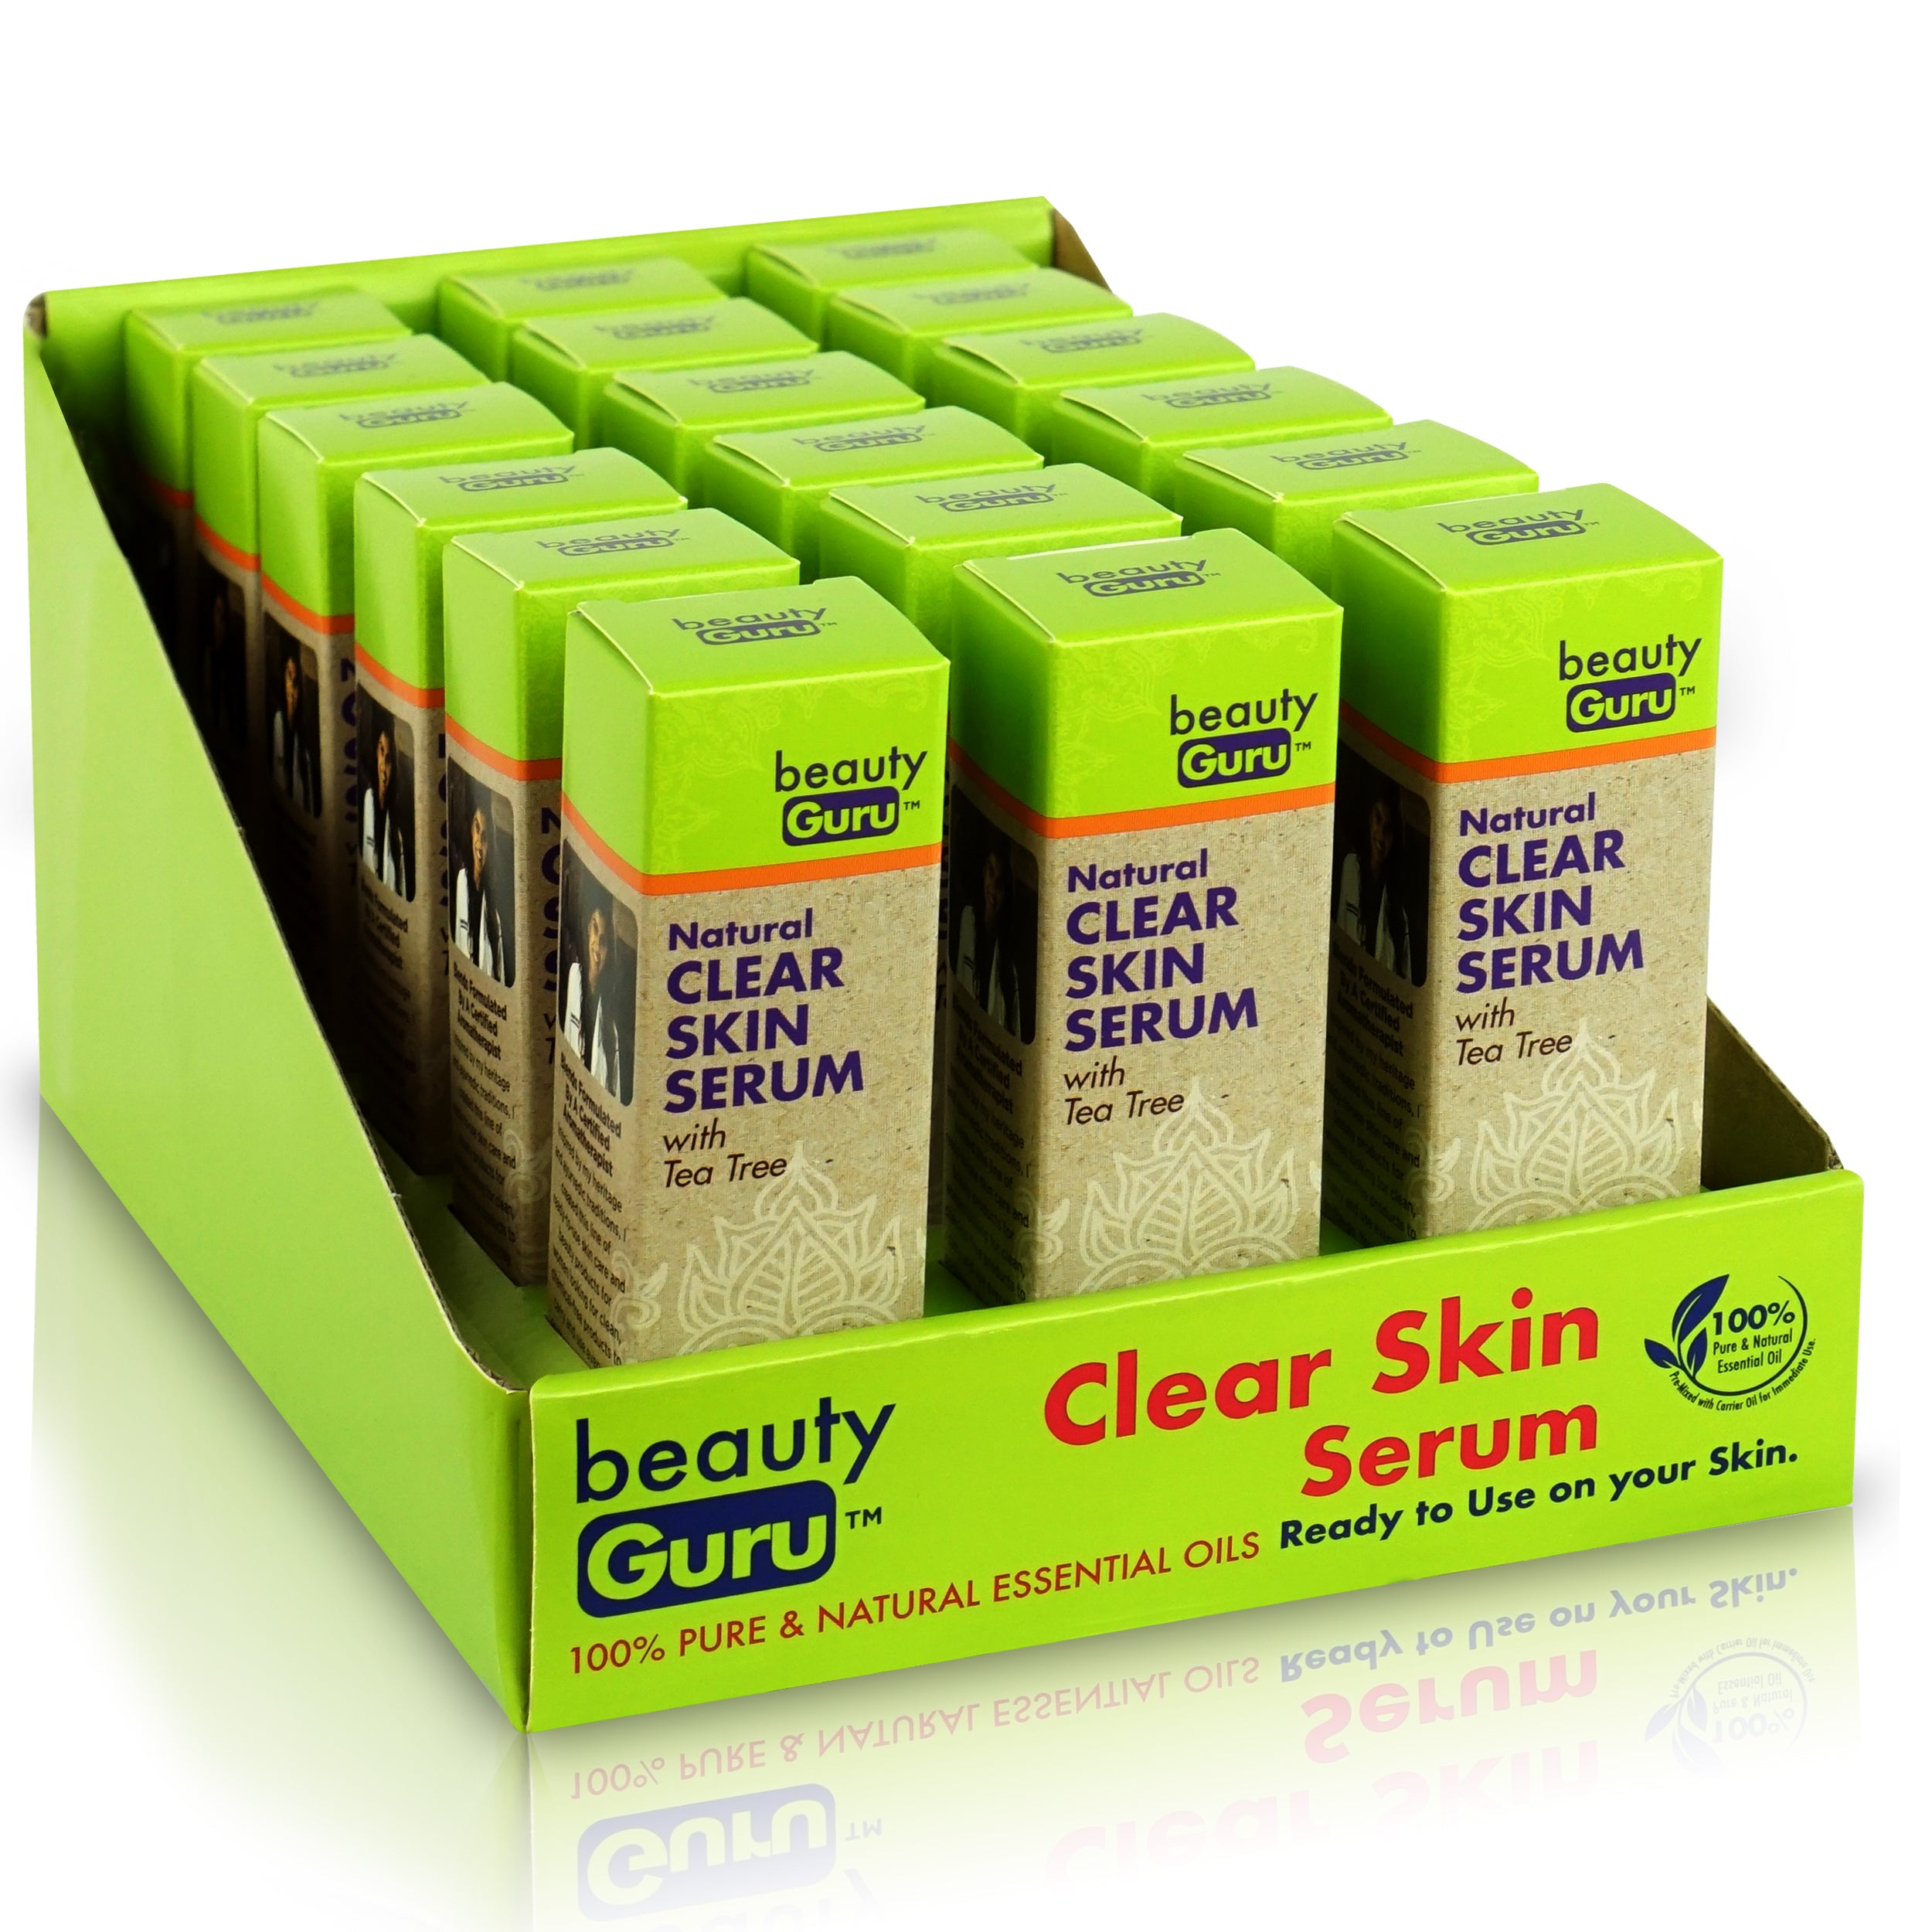 Clear Skin Serum (pack of 18)